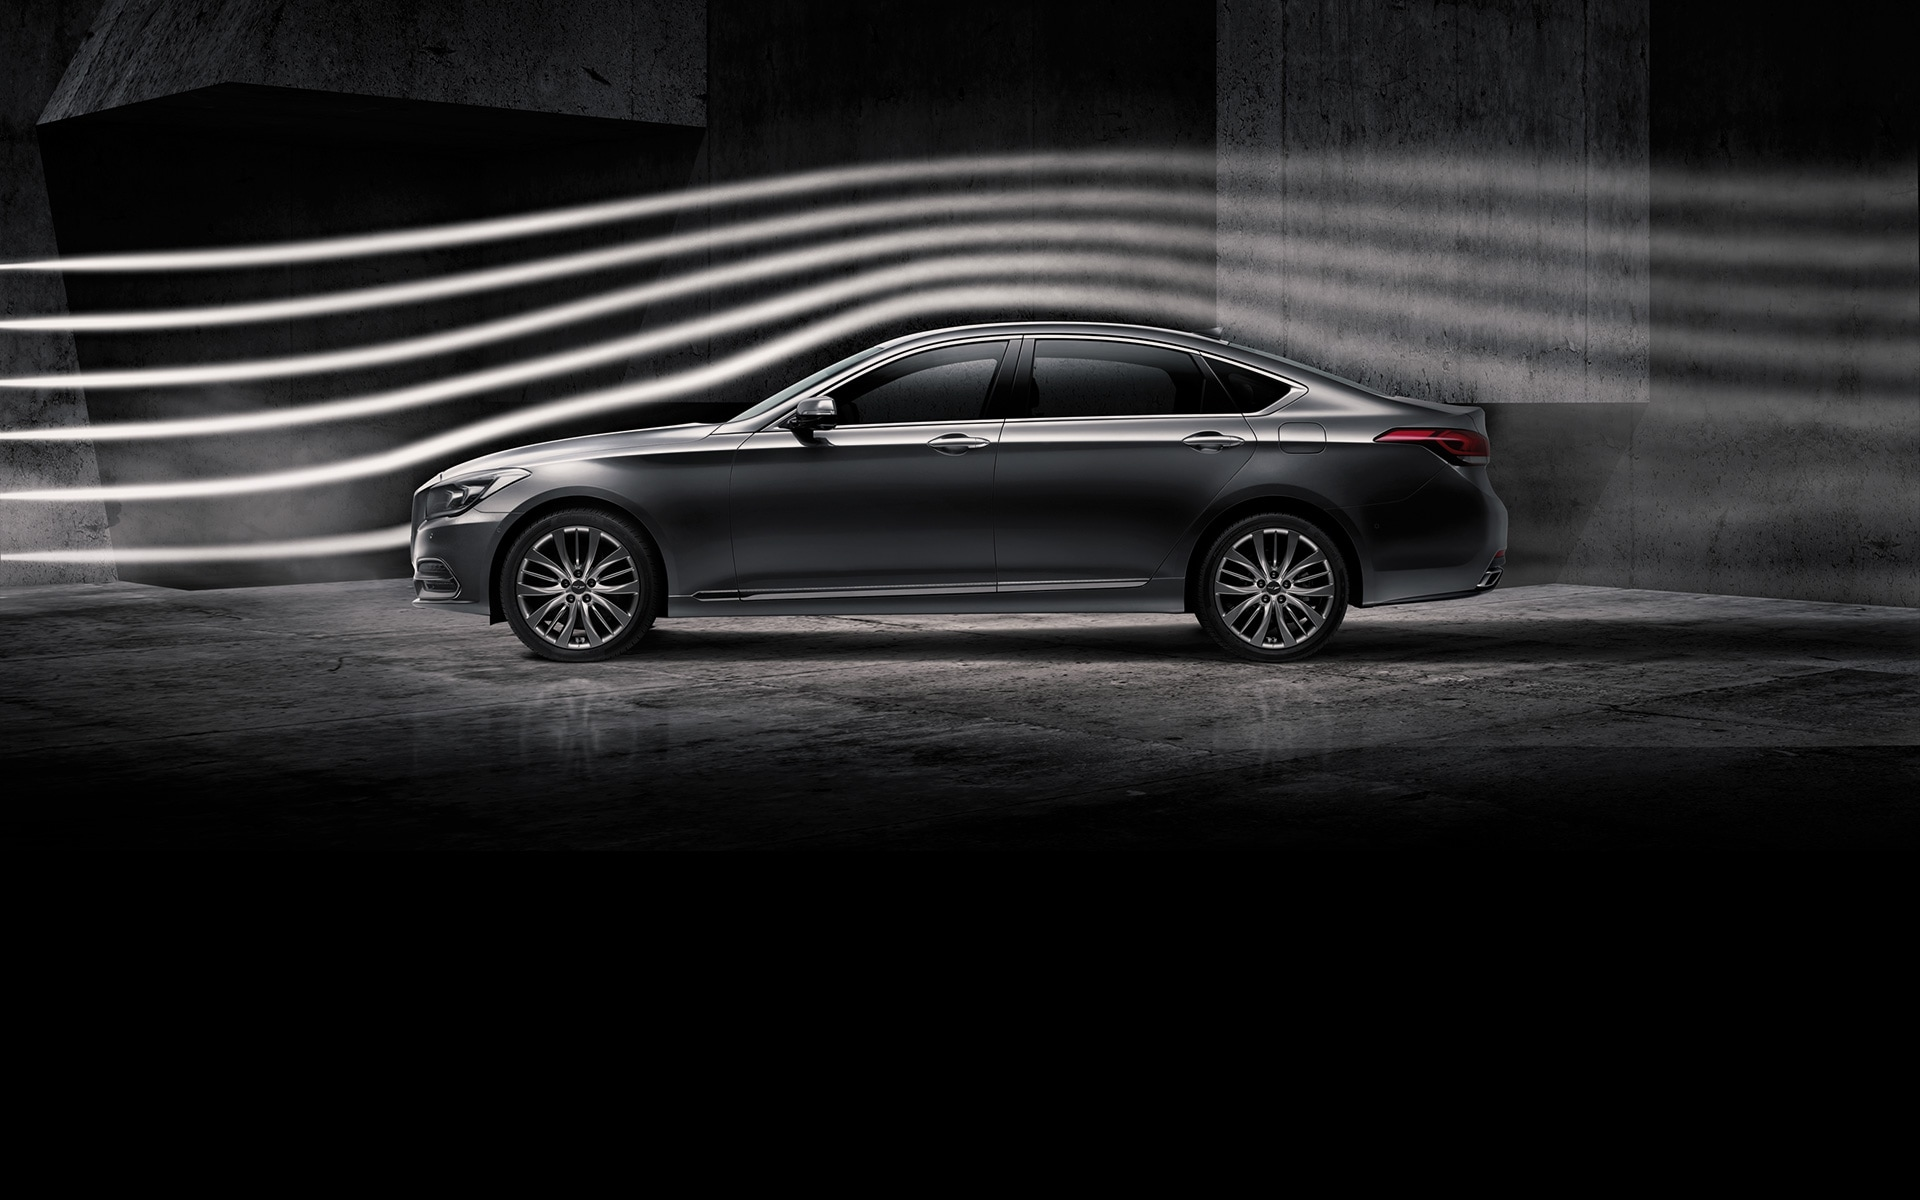 GENESIS G80 Performance Features - Weight balance and aerodynamic performance